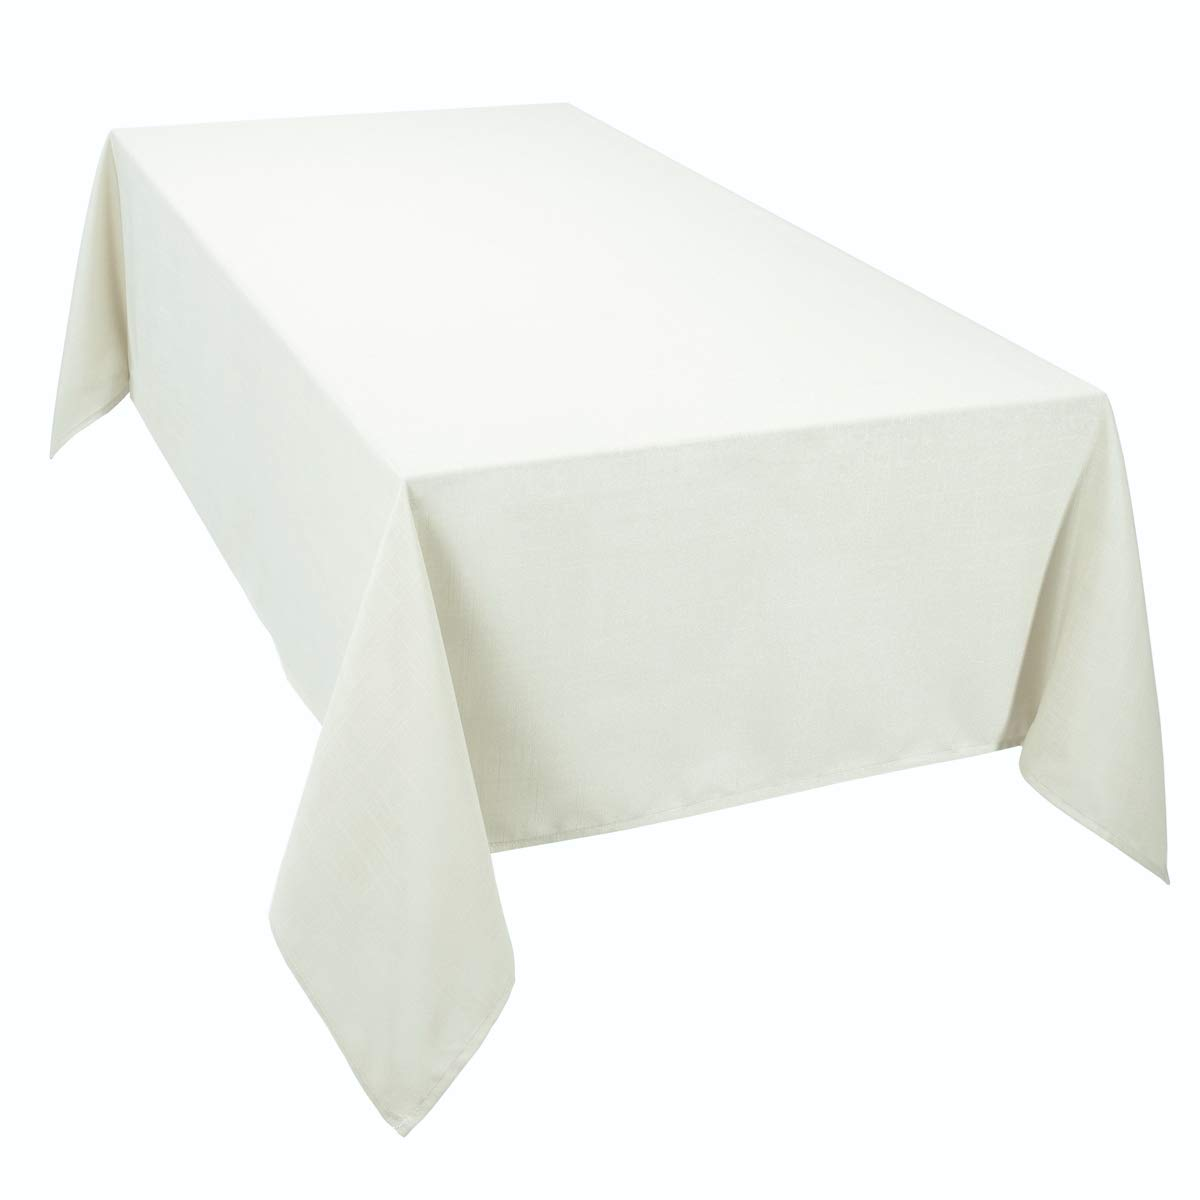 4YH Textiles Essentiel Cream Pack Of 4 Table Polyester Napkins 16in x 16in (40cm x 40cm) Approximately